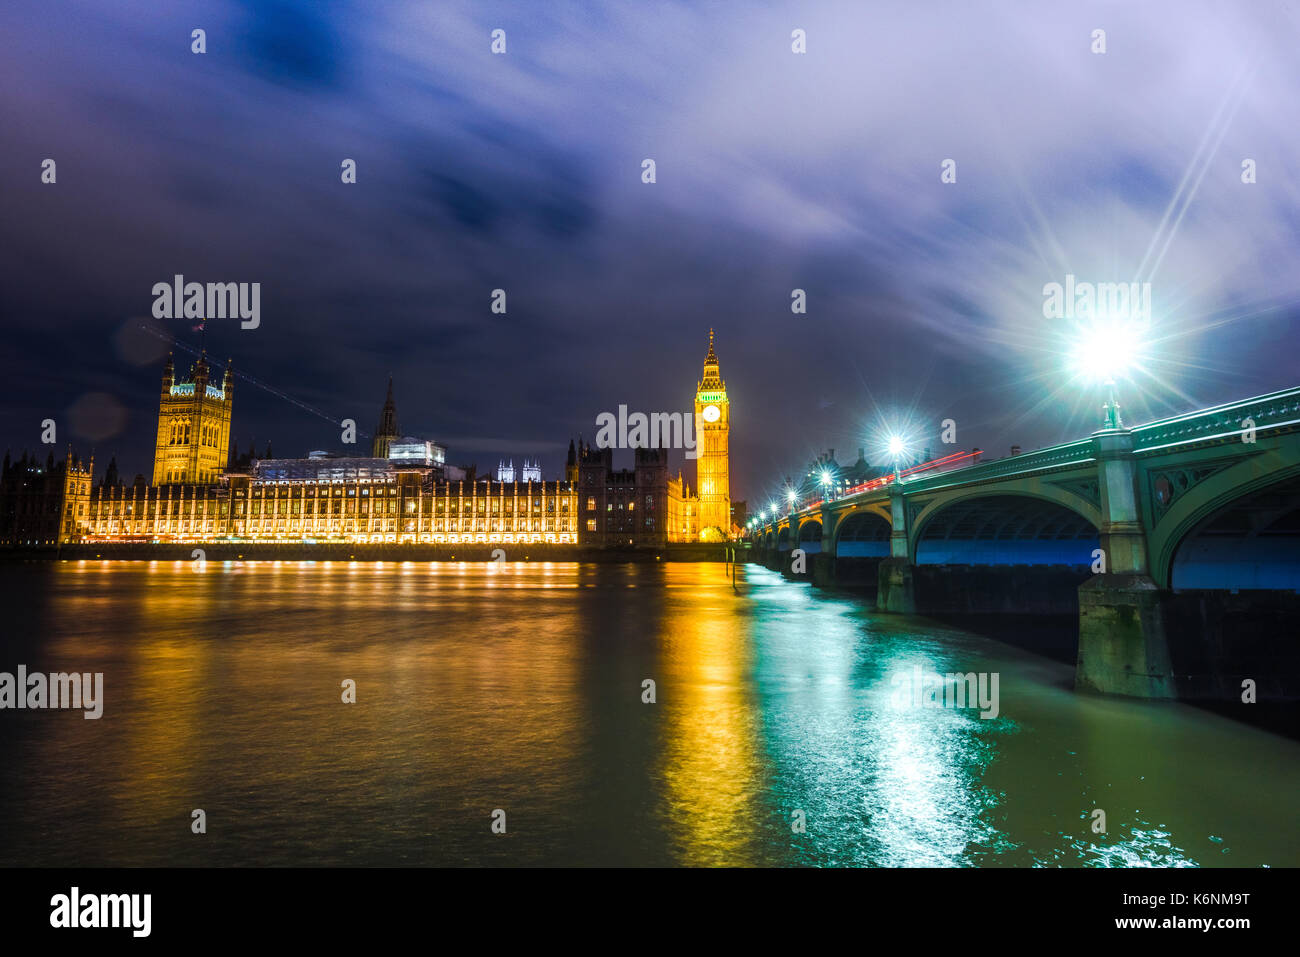 Big Ben & The Houses of Parliament, London, United Kingdom - Stock Image